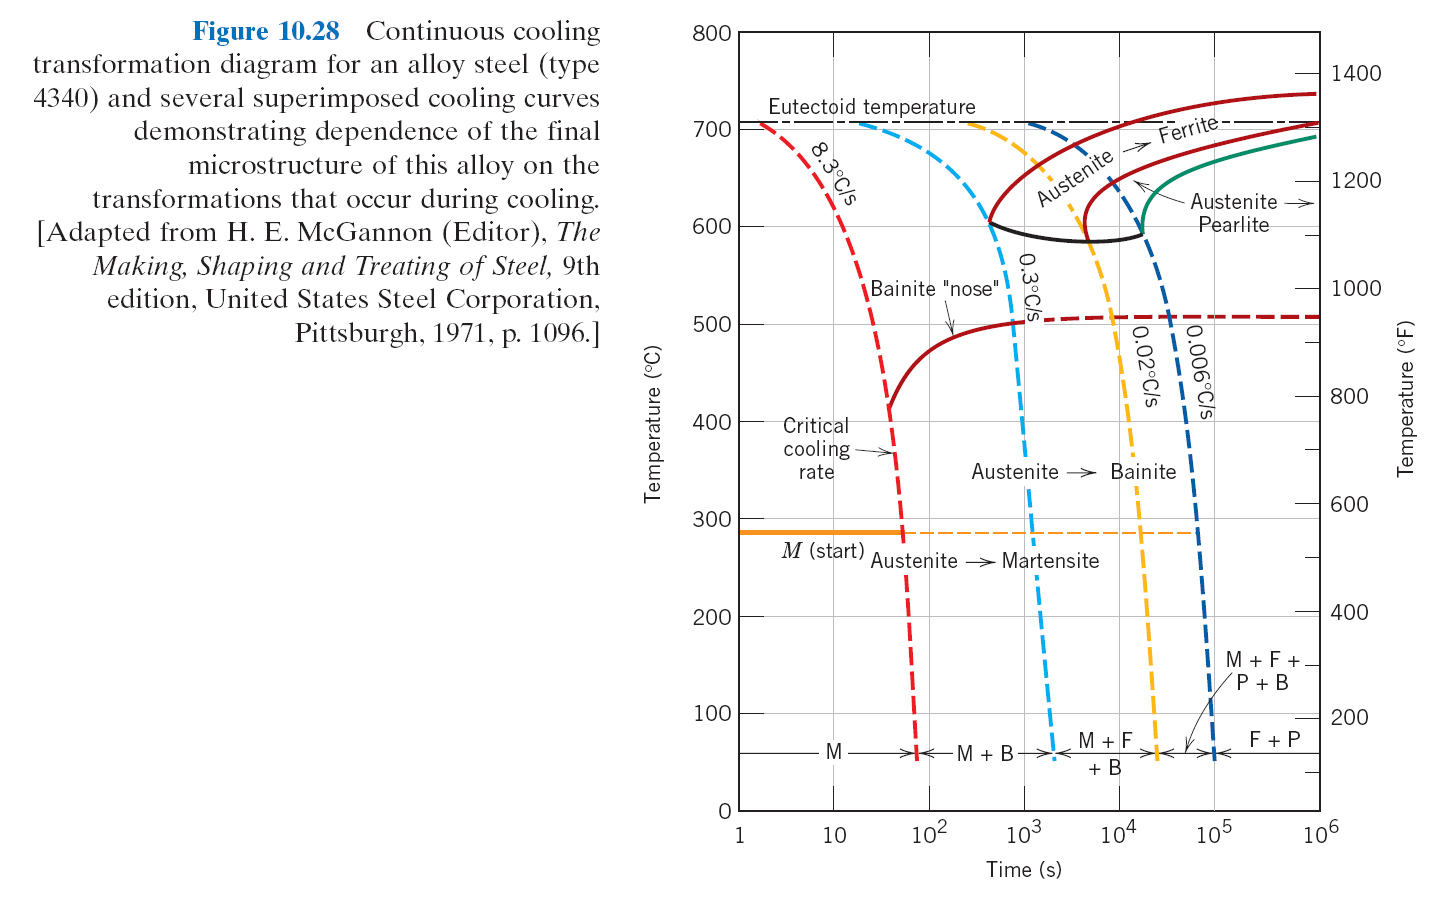 Mse250 f11 repository 2638 continuous cooling curve for 035 wt hypoeutectoid alloy class handout 3010 continuous cooling curve for 4340 alloy ccuart Choice Image